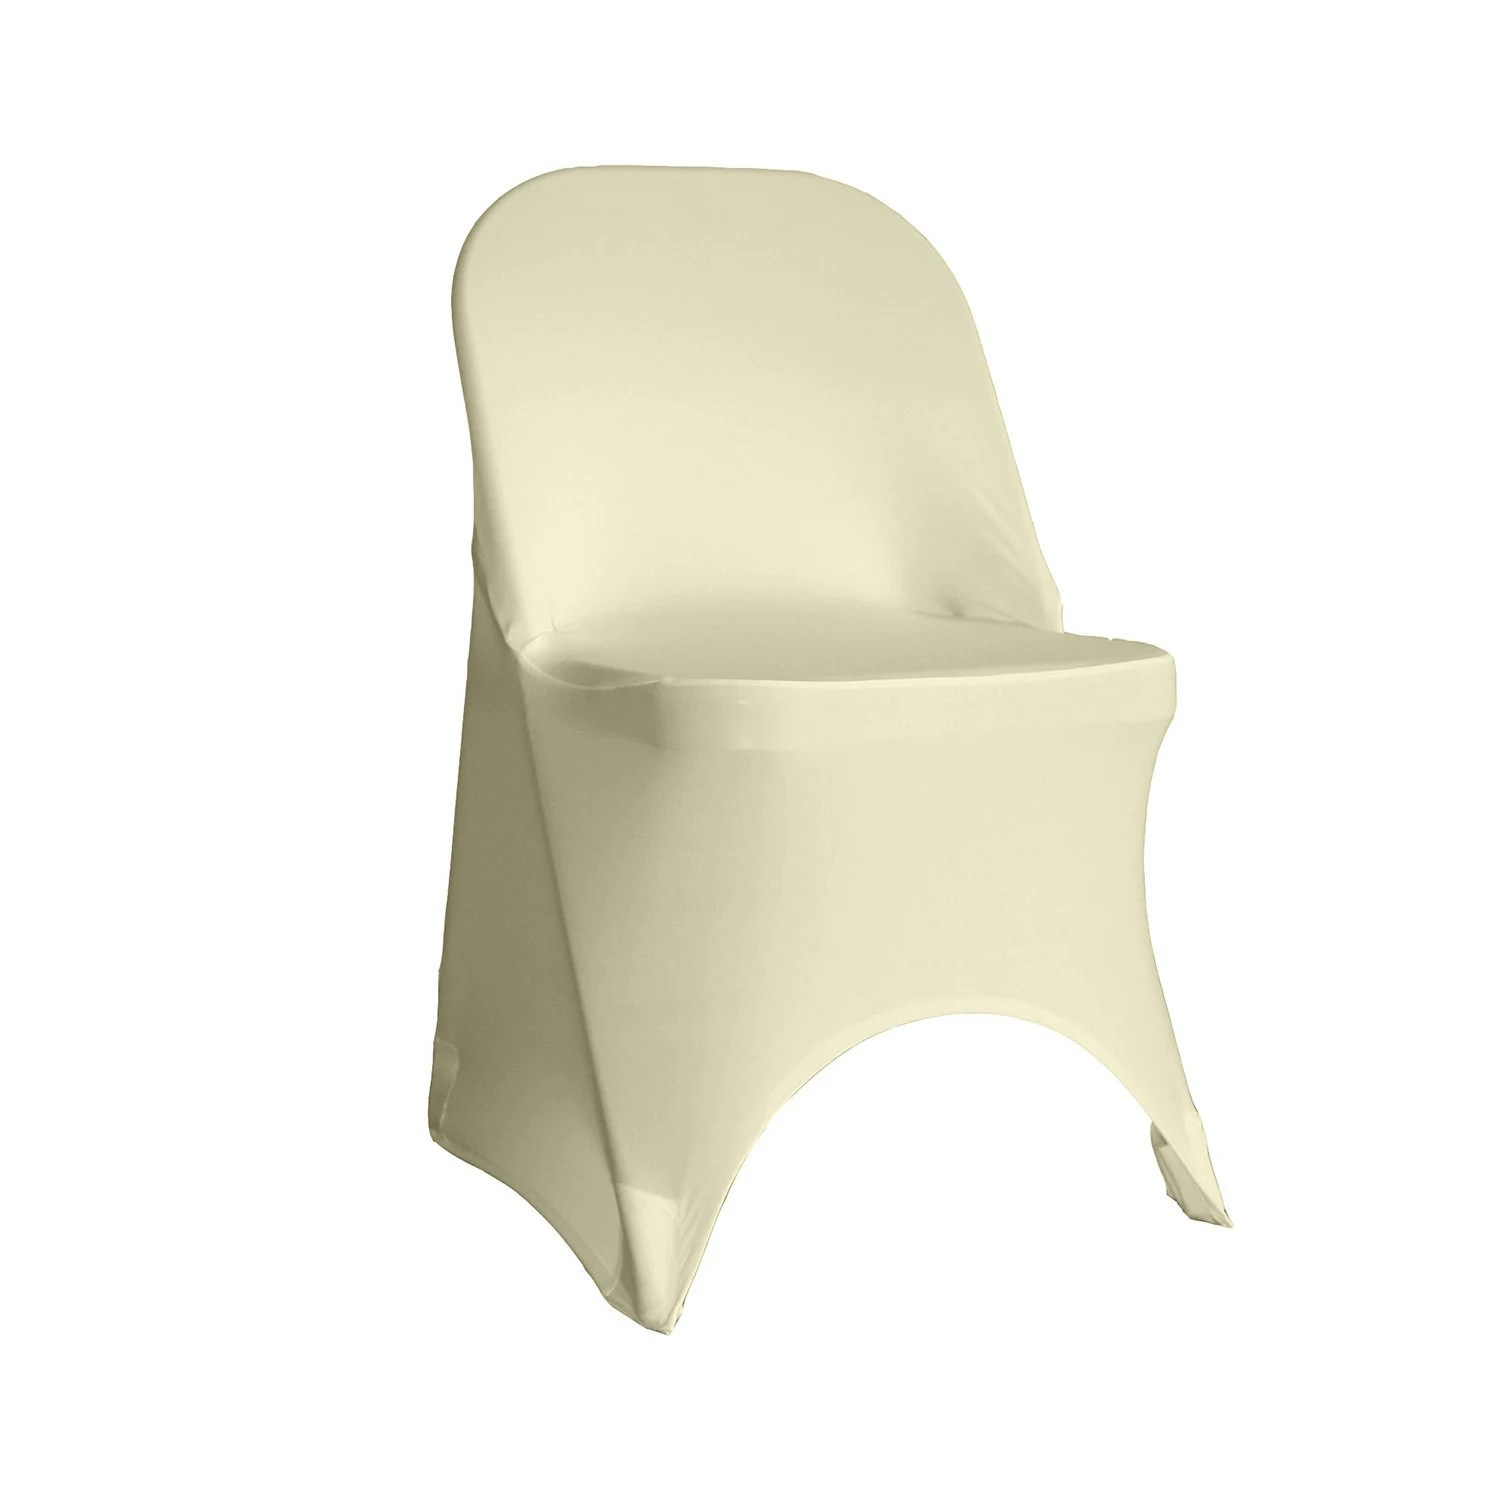 chair covers for purchase wooden blueprints ivory spandex folding cover stretch etsy image 0